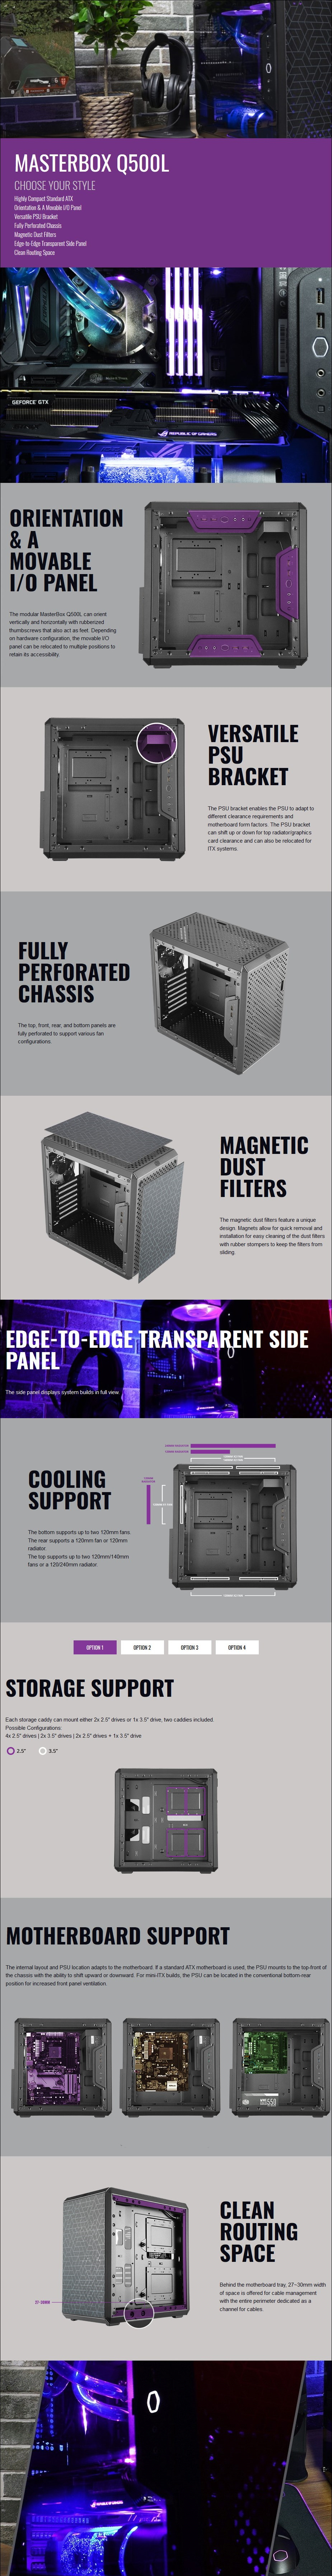 A large marketing image providing additional information about the product Cooler Master Q500L Mid Tower Case w/Acrylic Side Panel - Additional alt info not provided